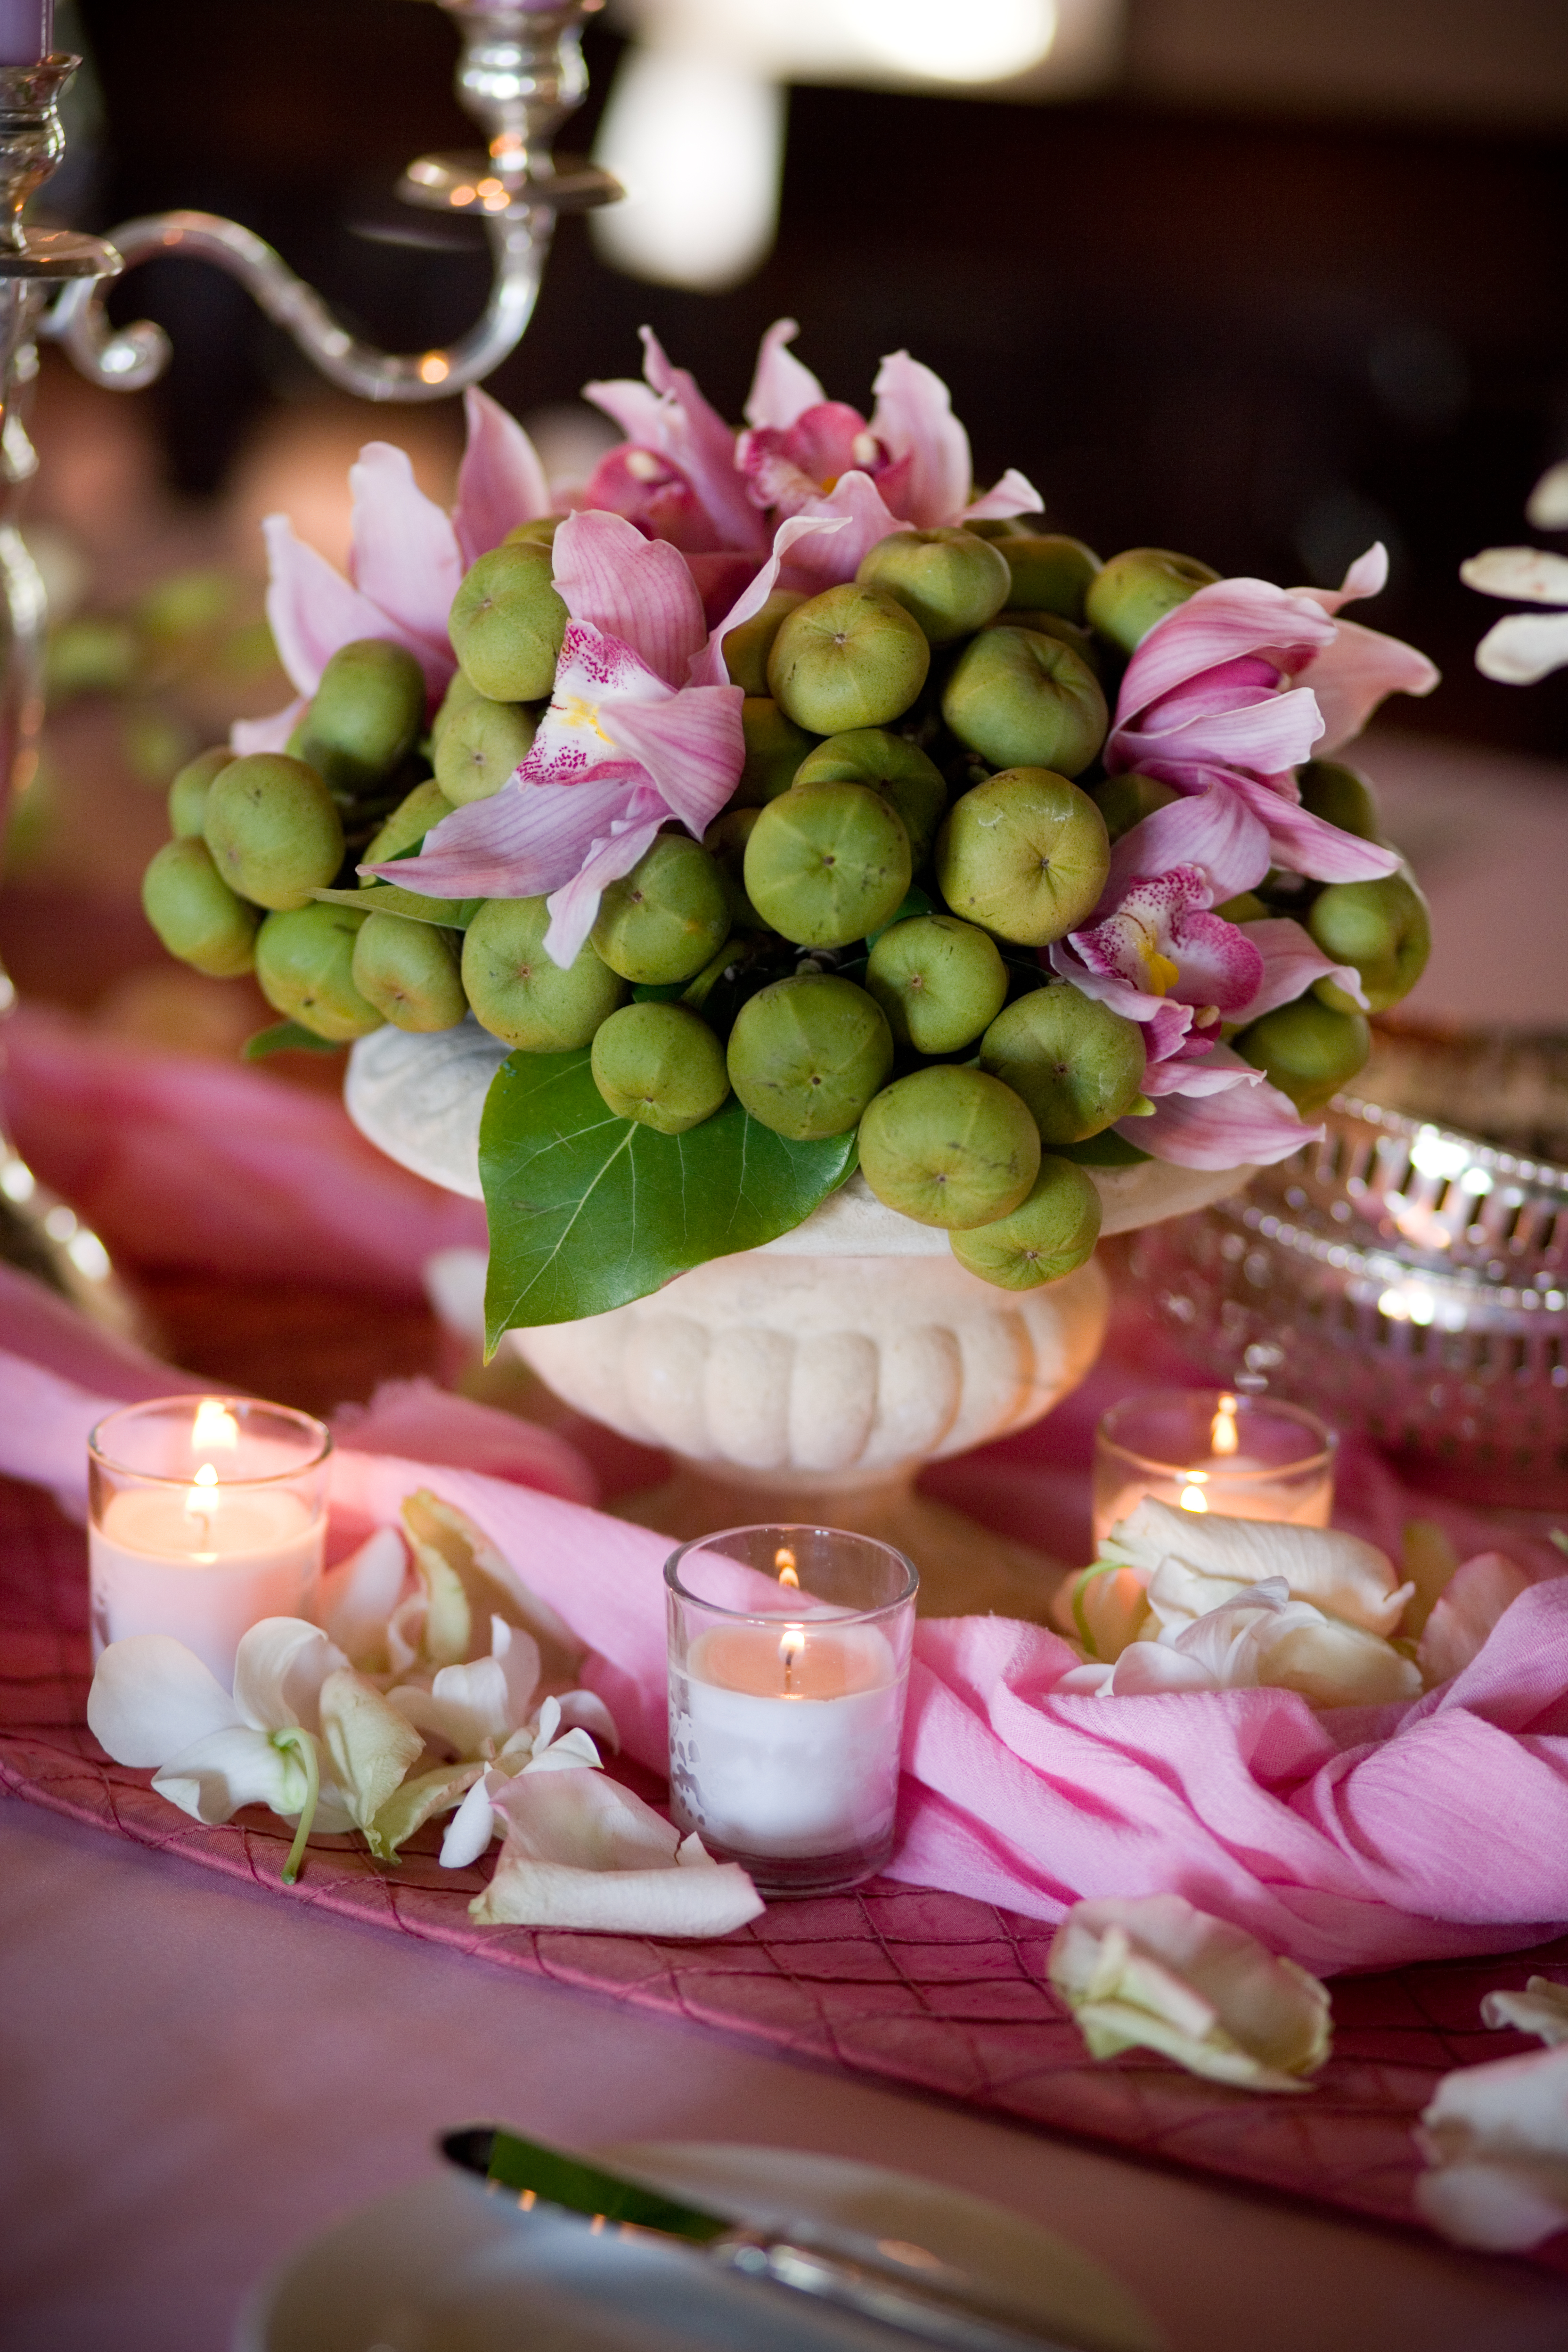 Flowers & Decor, Photography, Destinations, pink, green, Europe, Bride Bouquets, Bride, Flowers, Groom, Table, Destination, Apples, Couple, crab, italy, California, York, New, San, Francisco, Napa, Setting, Charleston, Corbin gurkin photography, Tuscany, Corbin, Gurkin